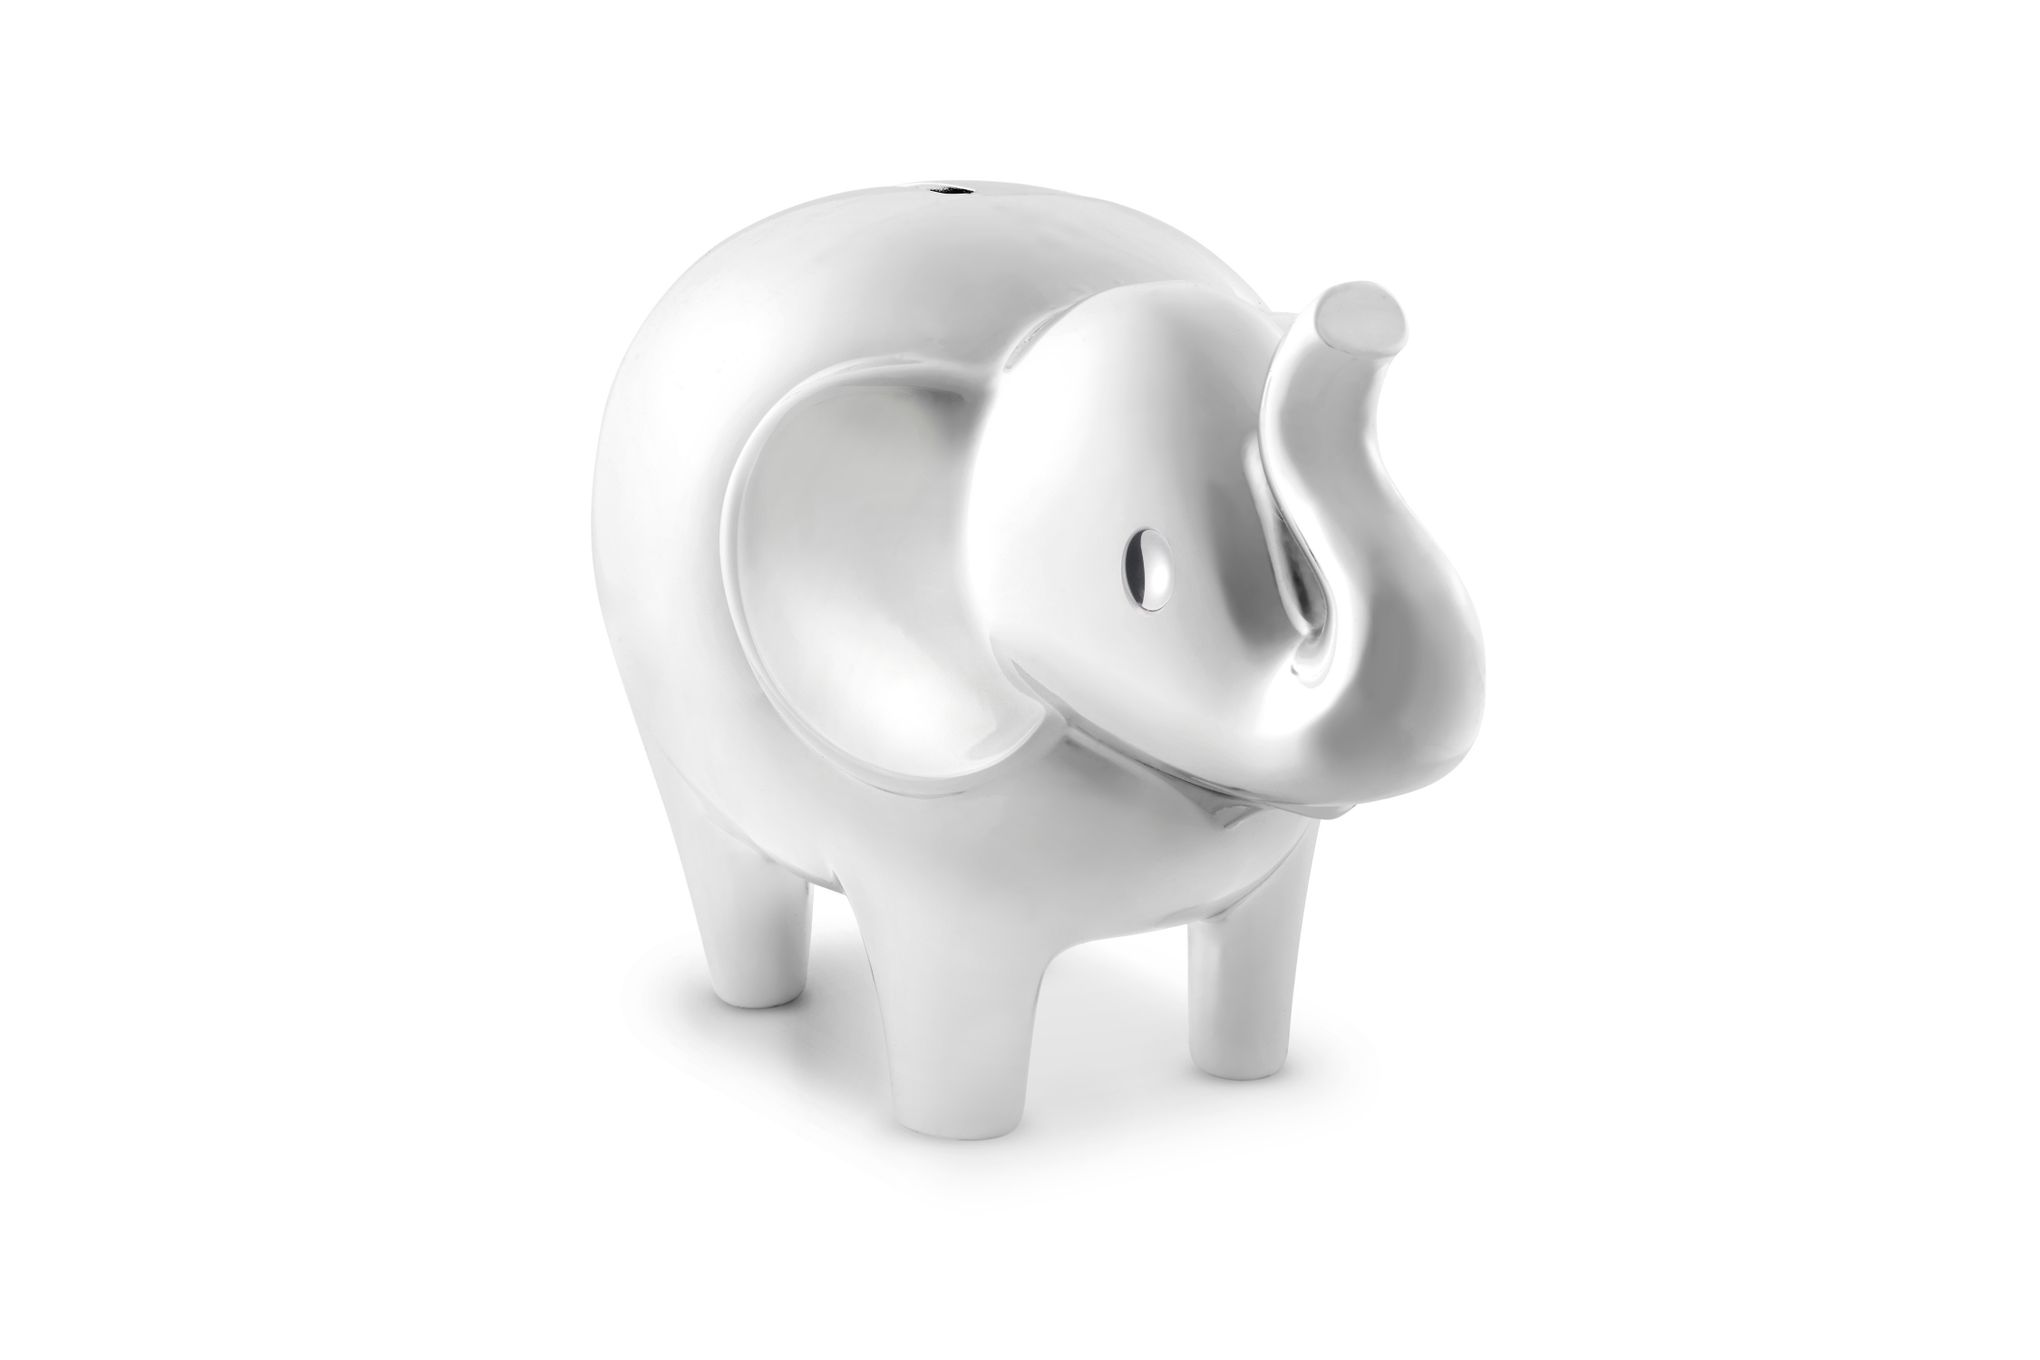 Vera Wang for Wedgwood Love Always Elephant Bank thumb 2